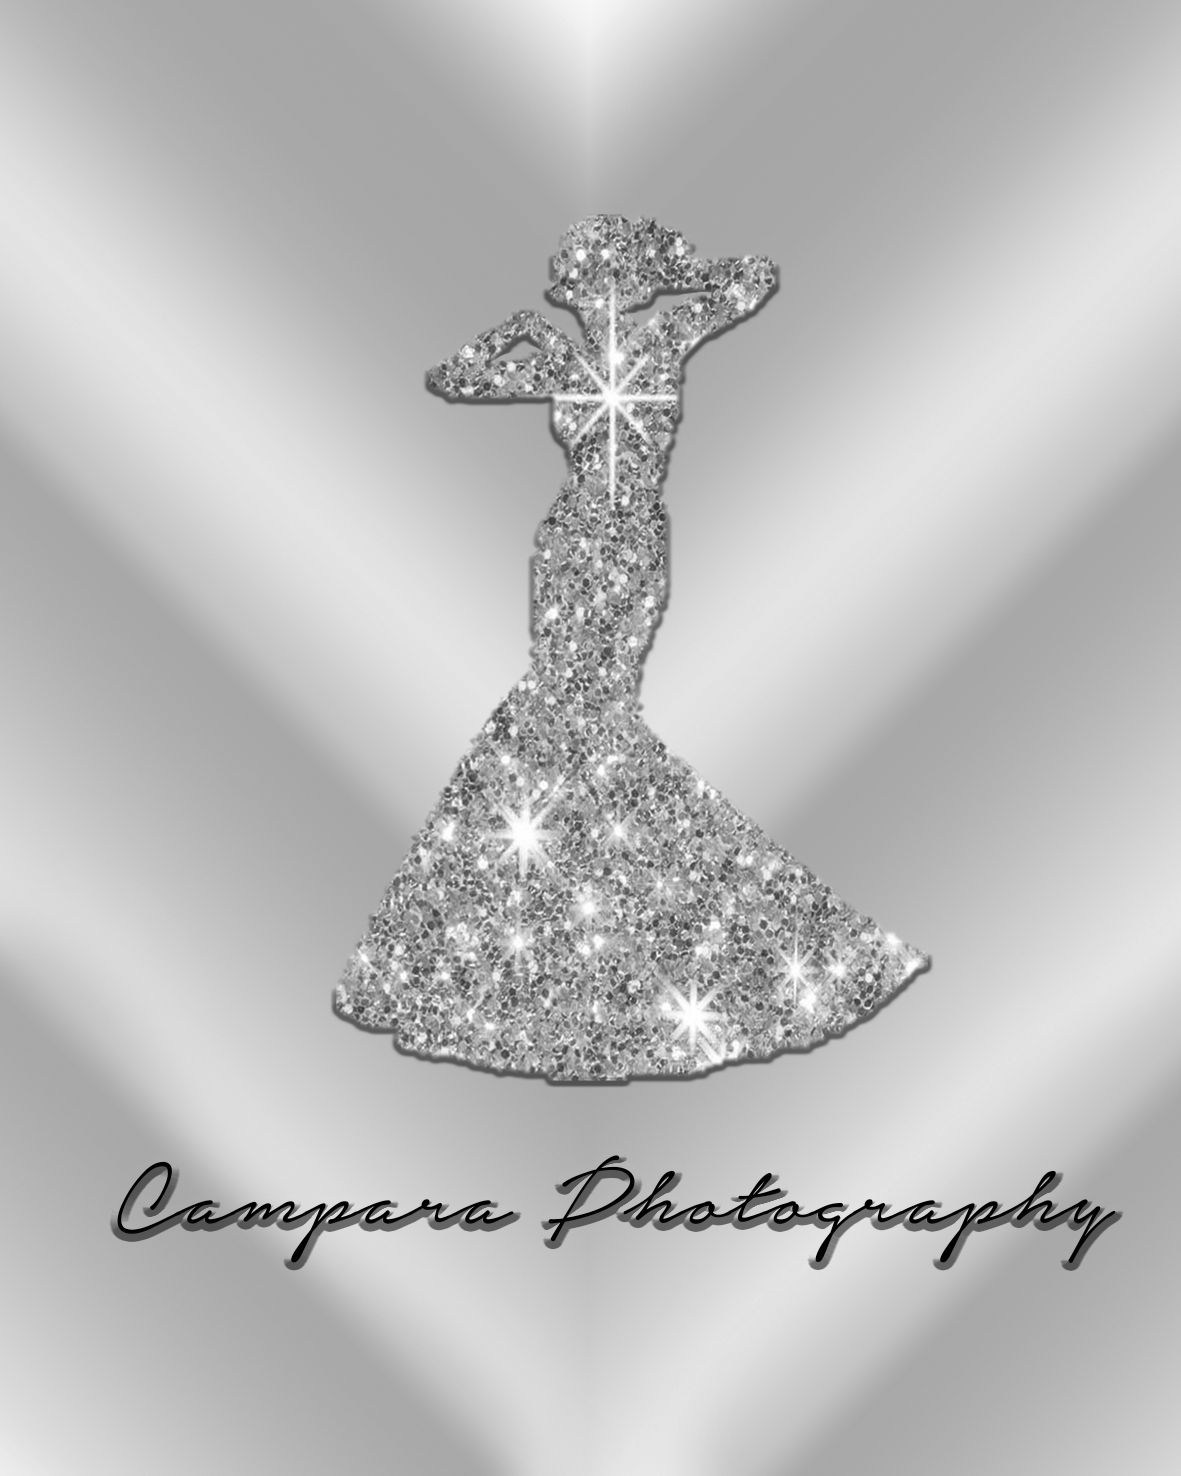 campara photography new logo2 2016.png